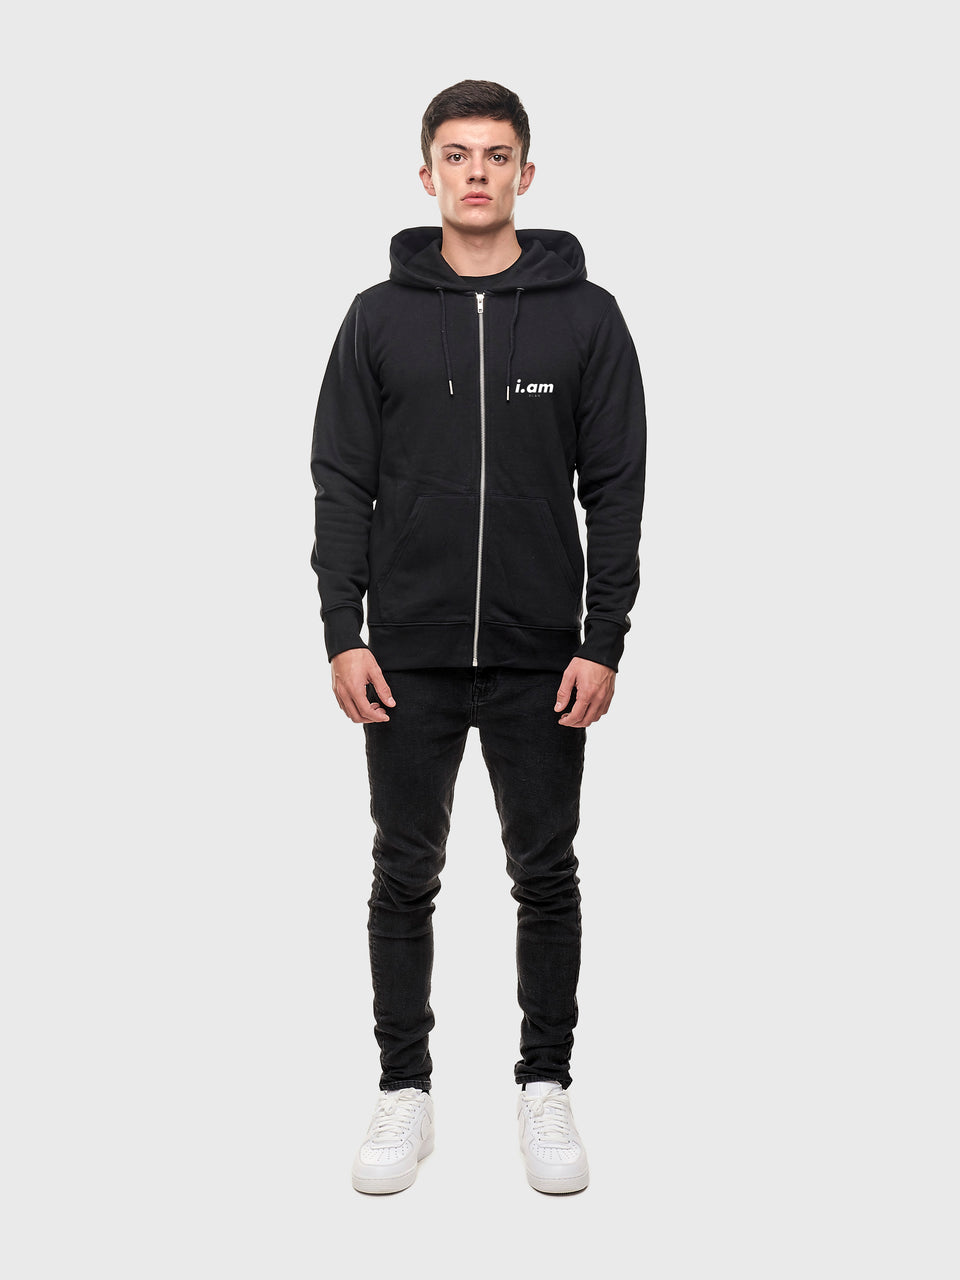 Not your baby - Black - Unisex zip up hoodie